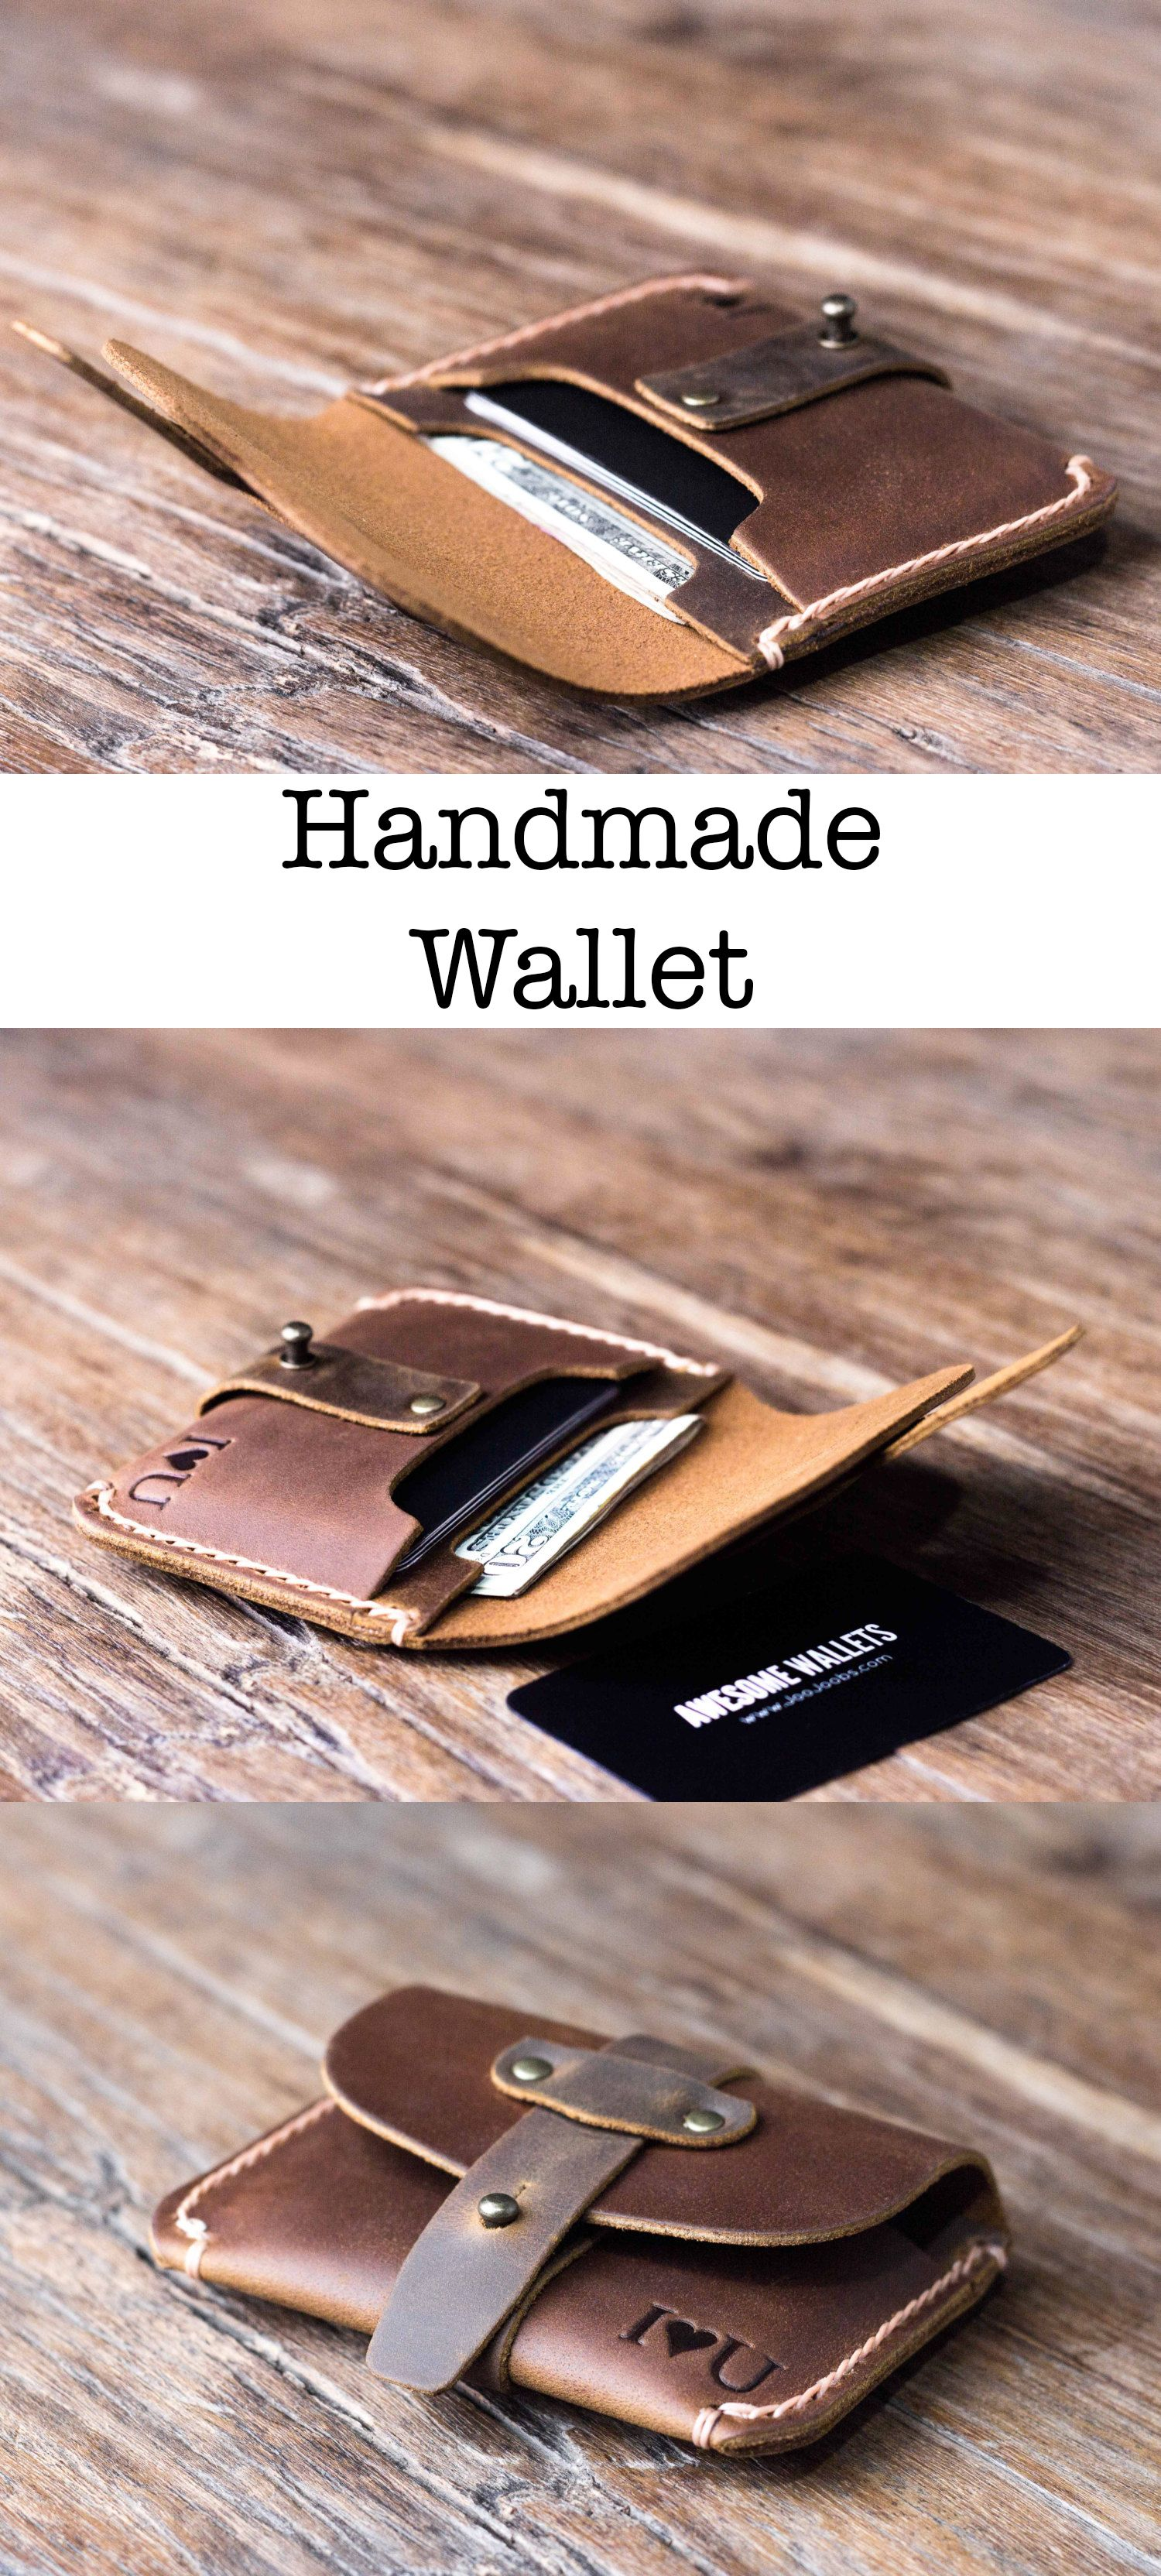 9c6915b874c438 Handmade Wallet. JooJoobs is a super popular Etsy shop specializing in  making handmade leather products